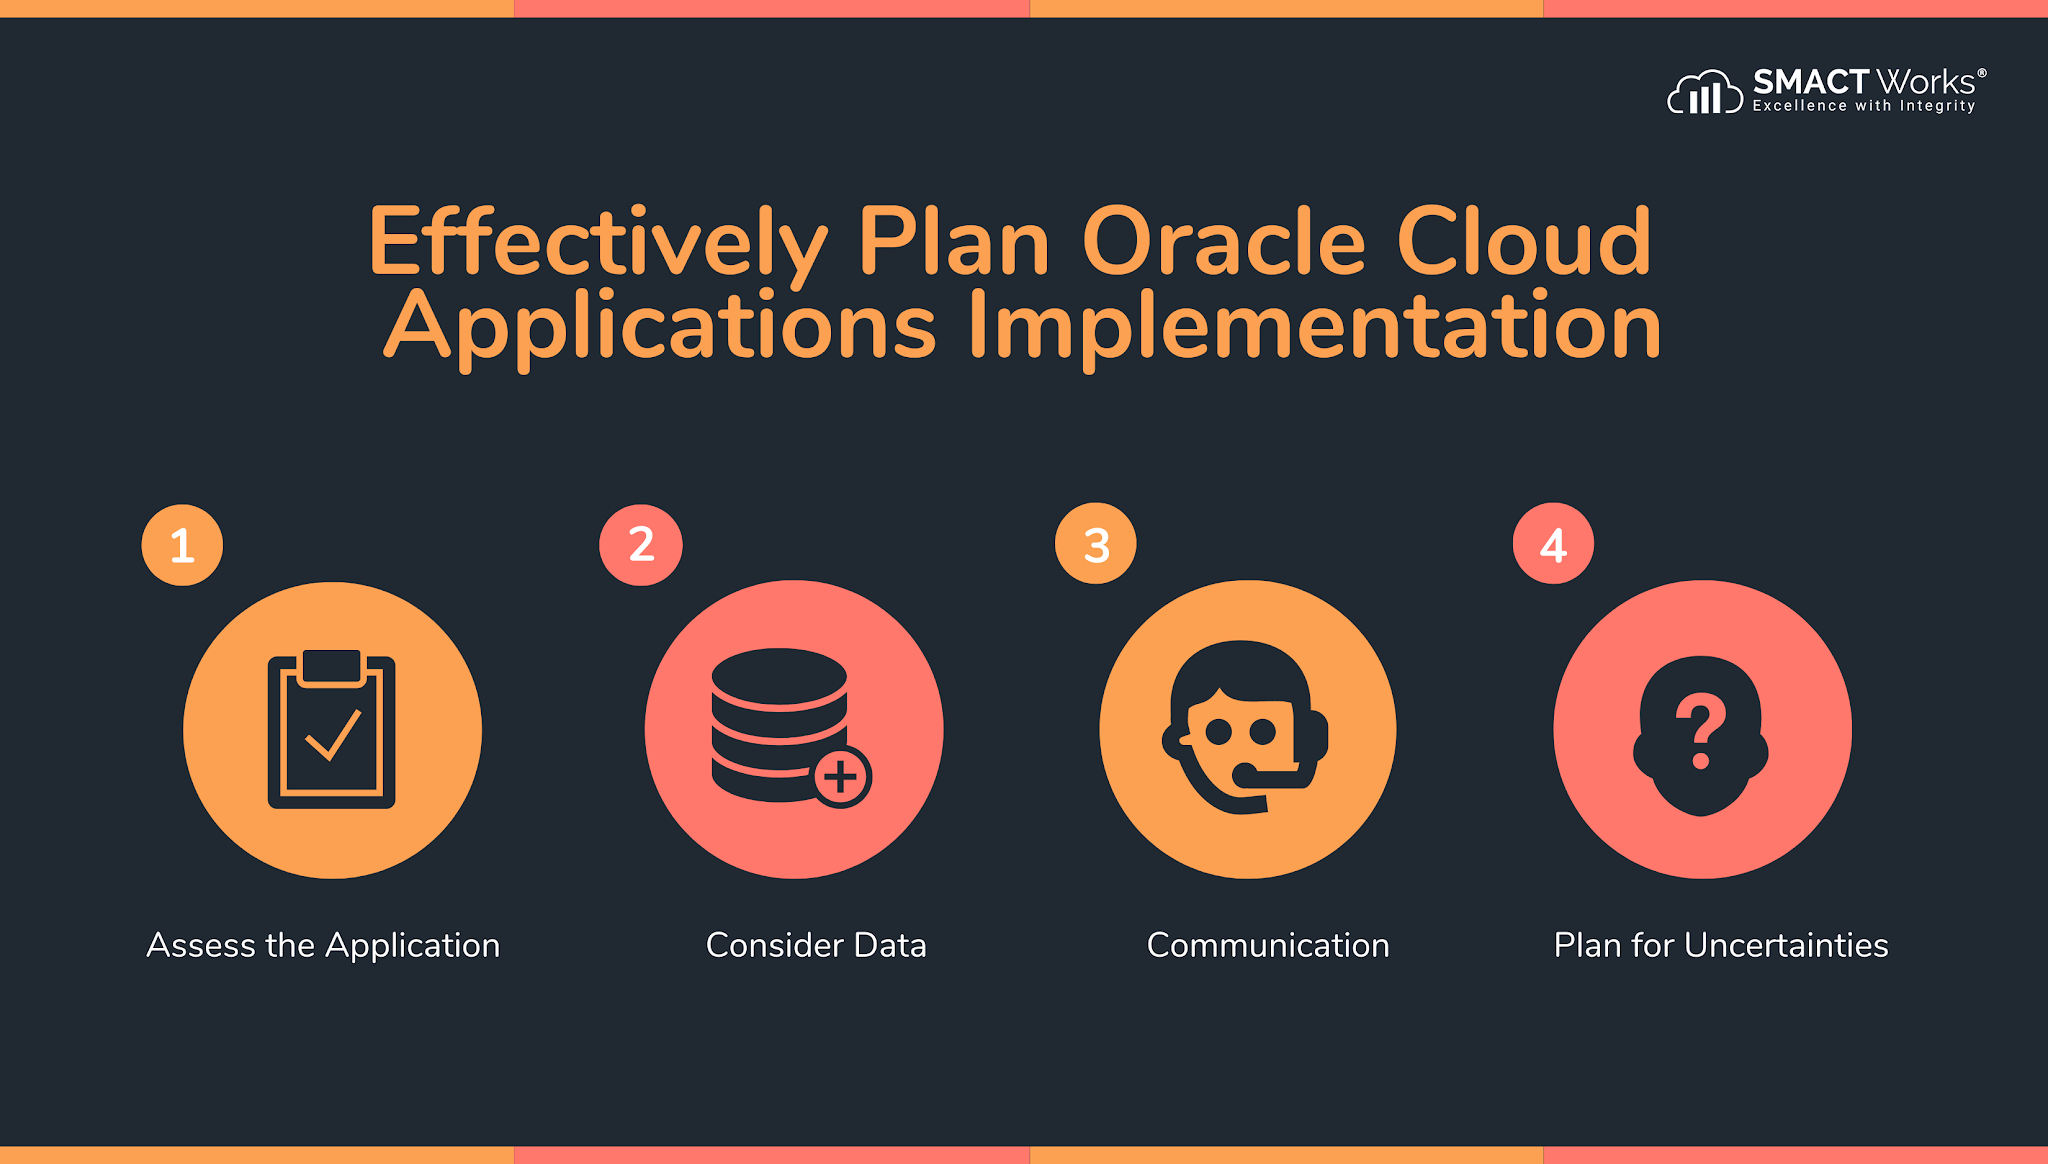 Effectively Plan Oracle Cloud Applications Implementation